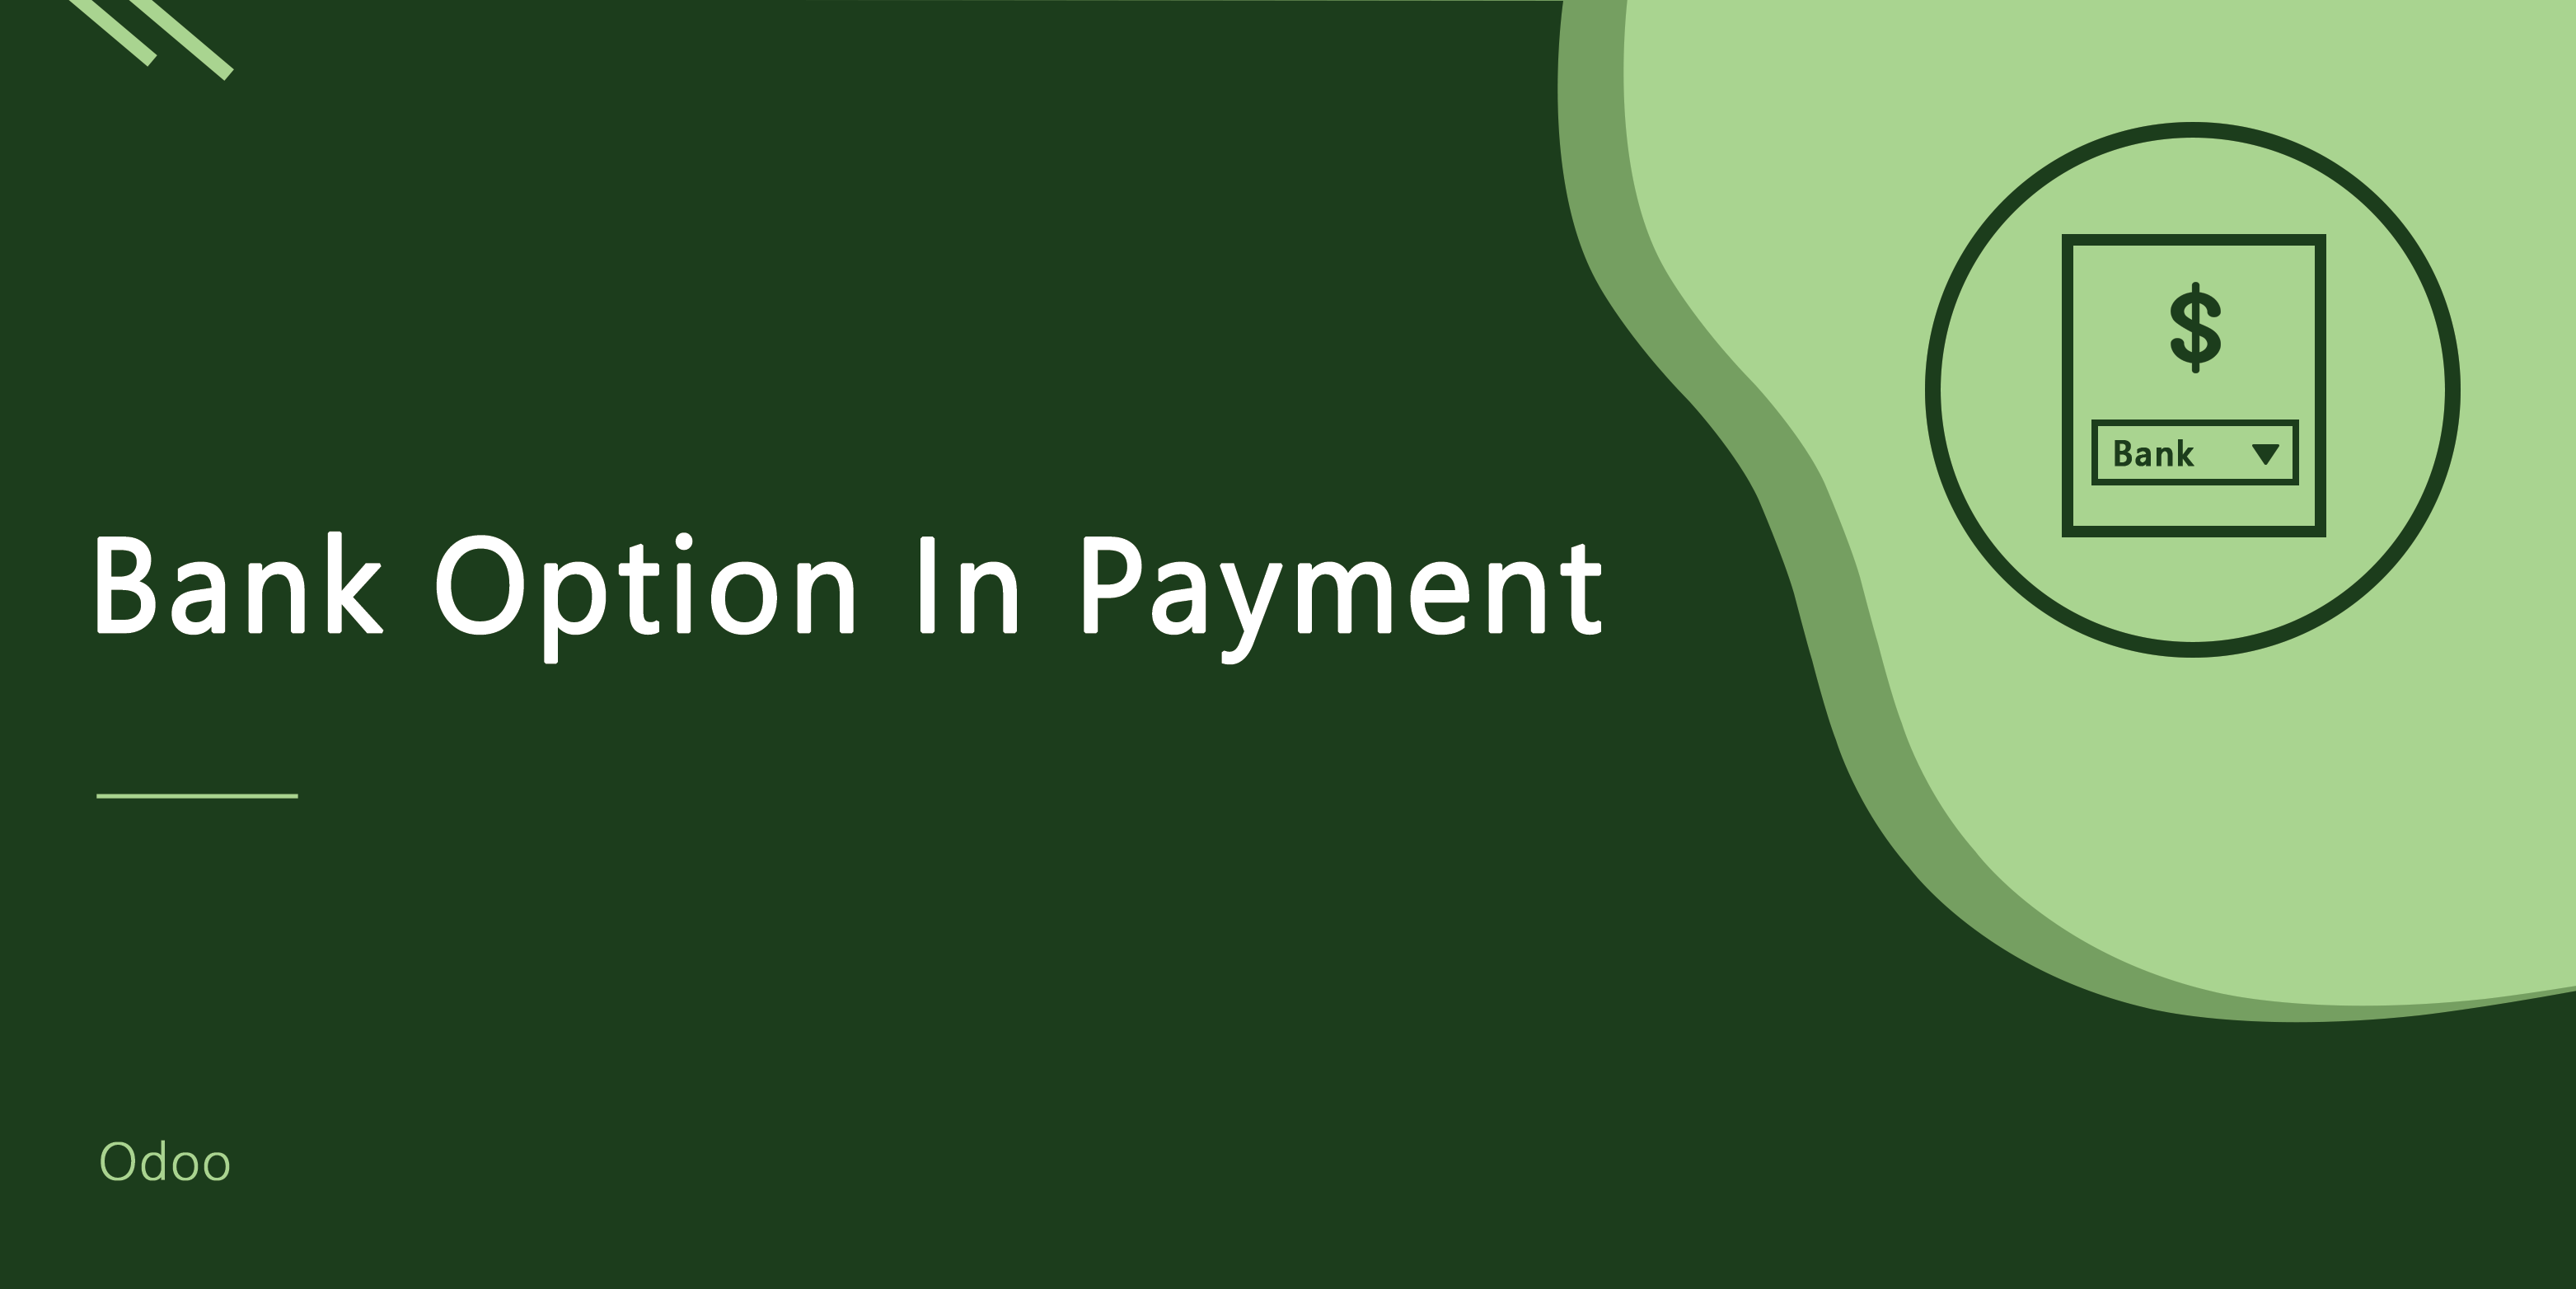 Bank Option In Payment